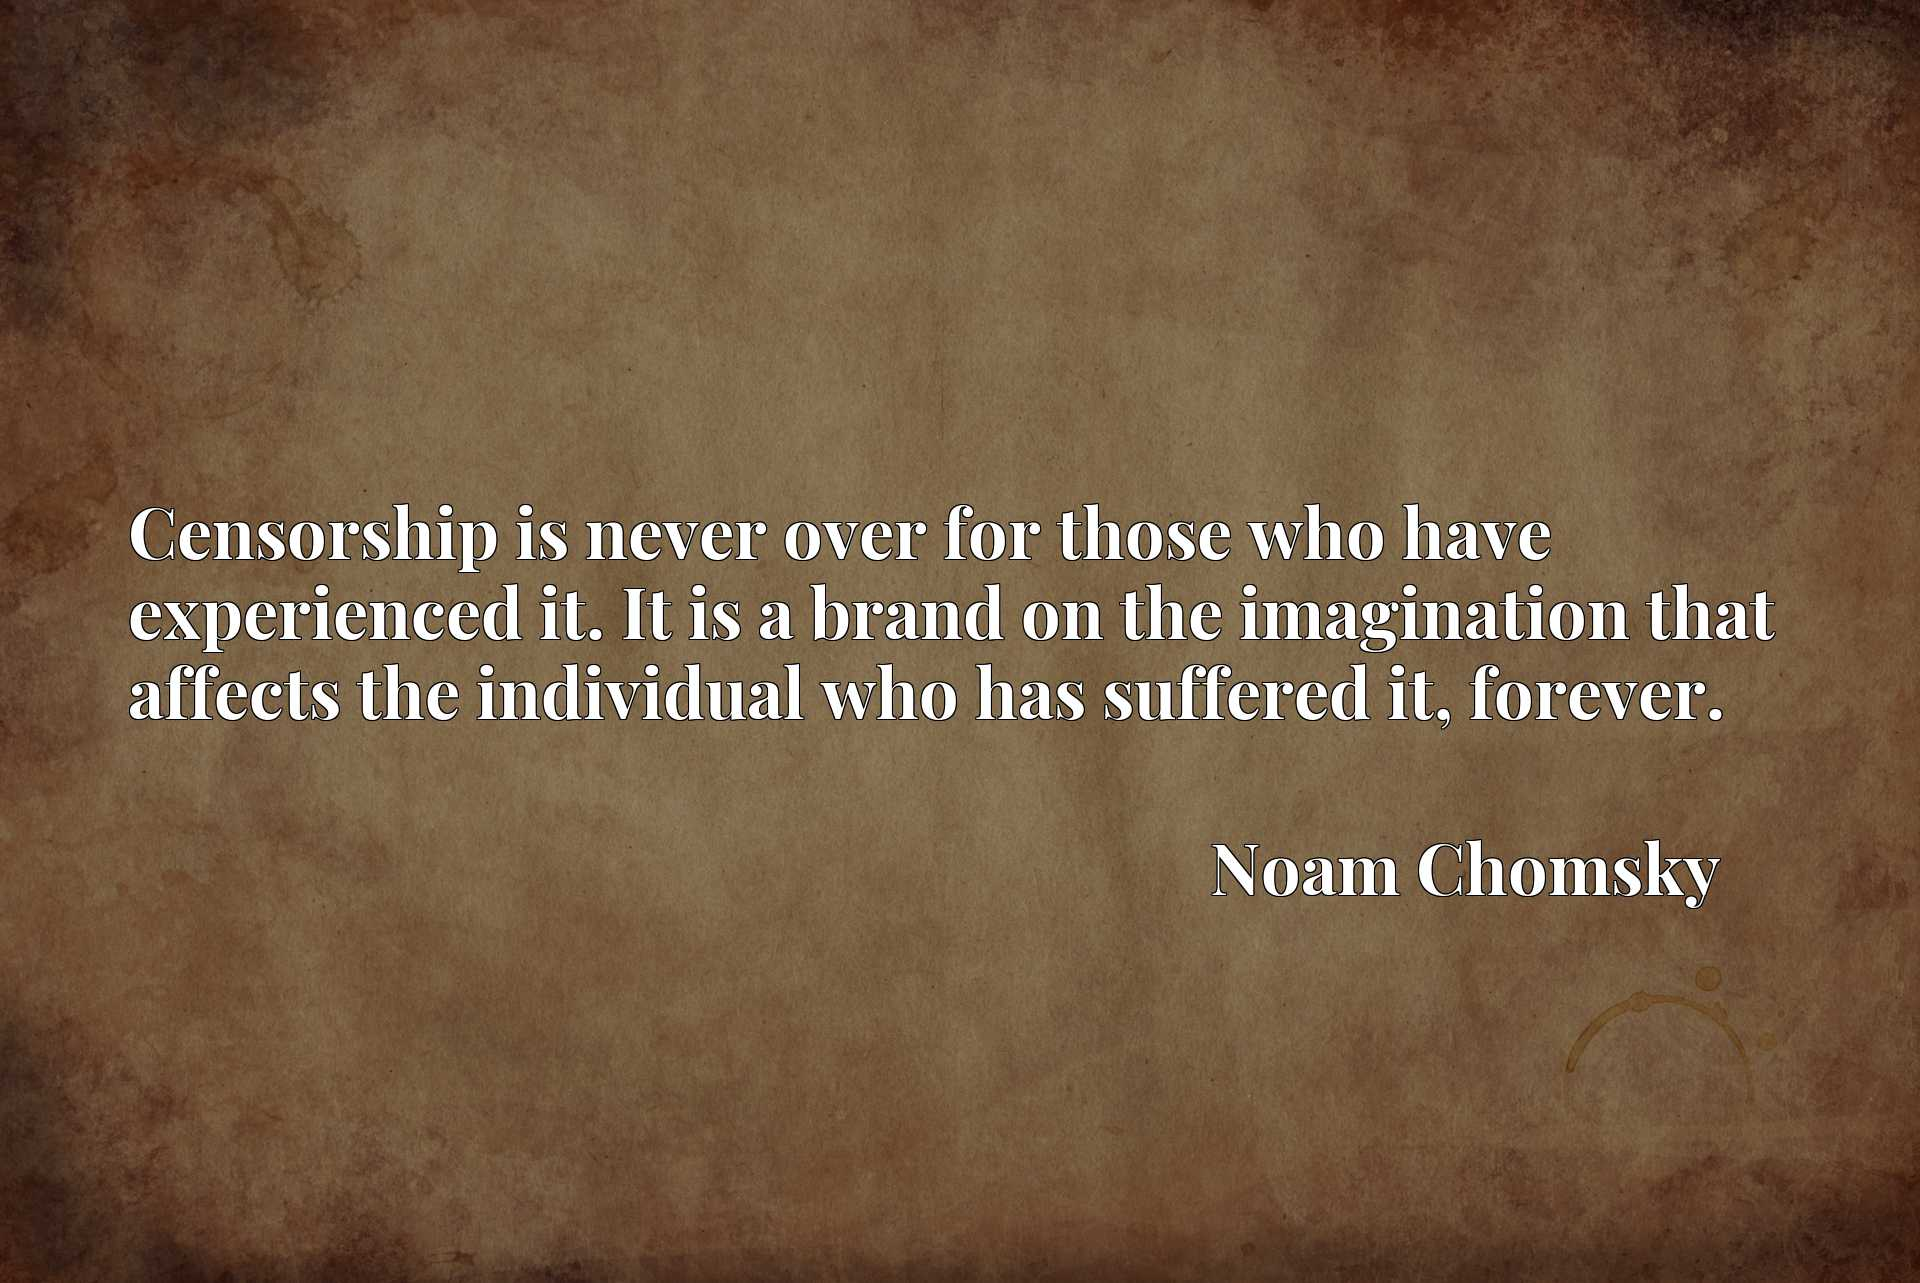 Quote Picture :Censorship is never over for those who have experienced it. It is a brand on the imagination that affects the individual who has suffered it, forever.